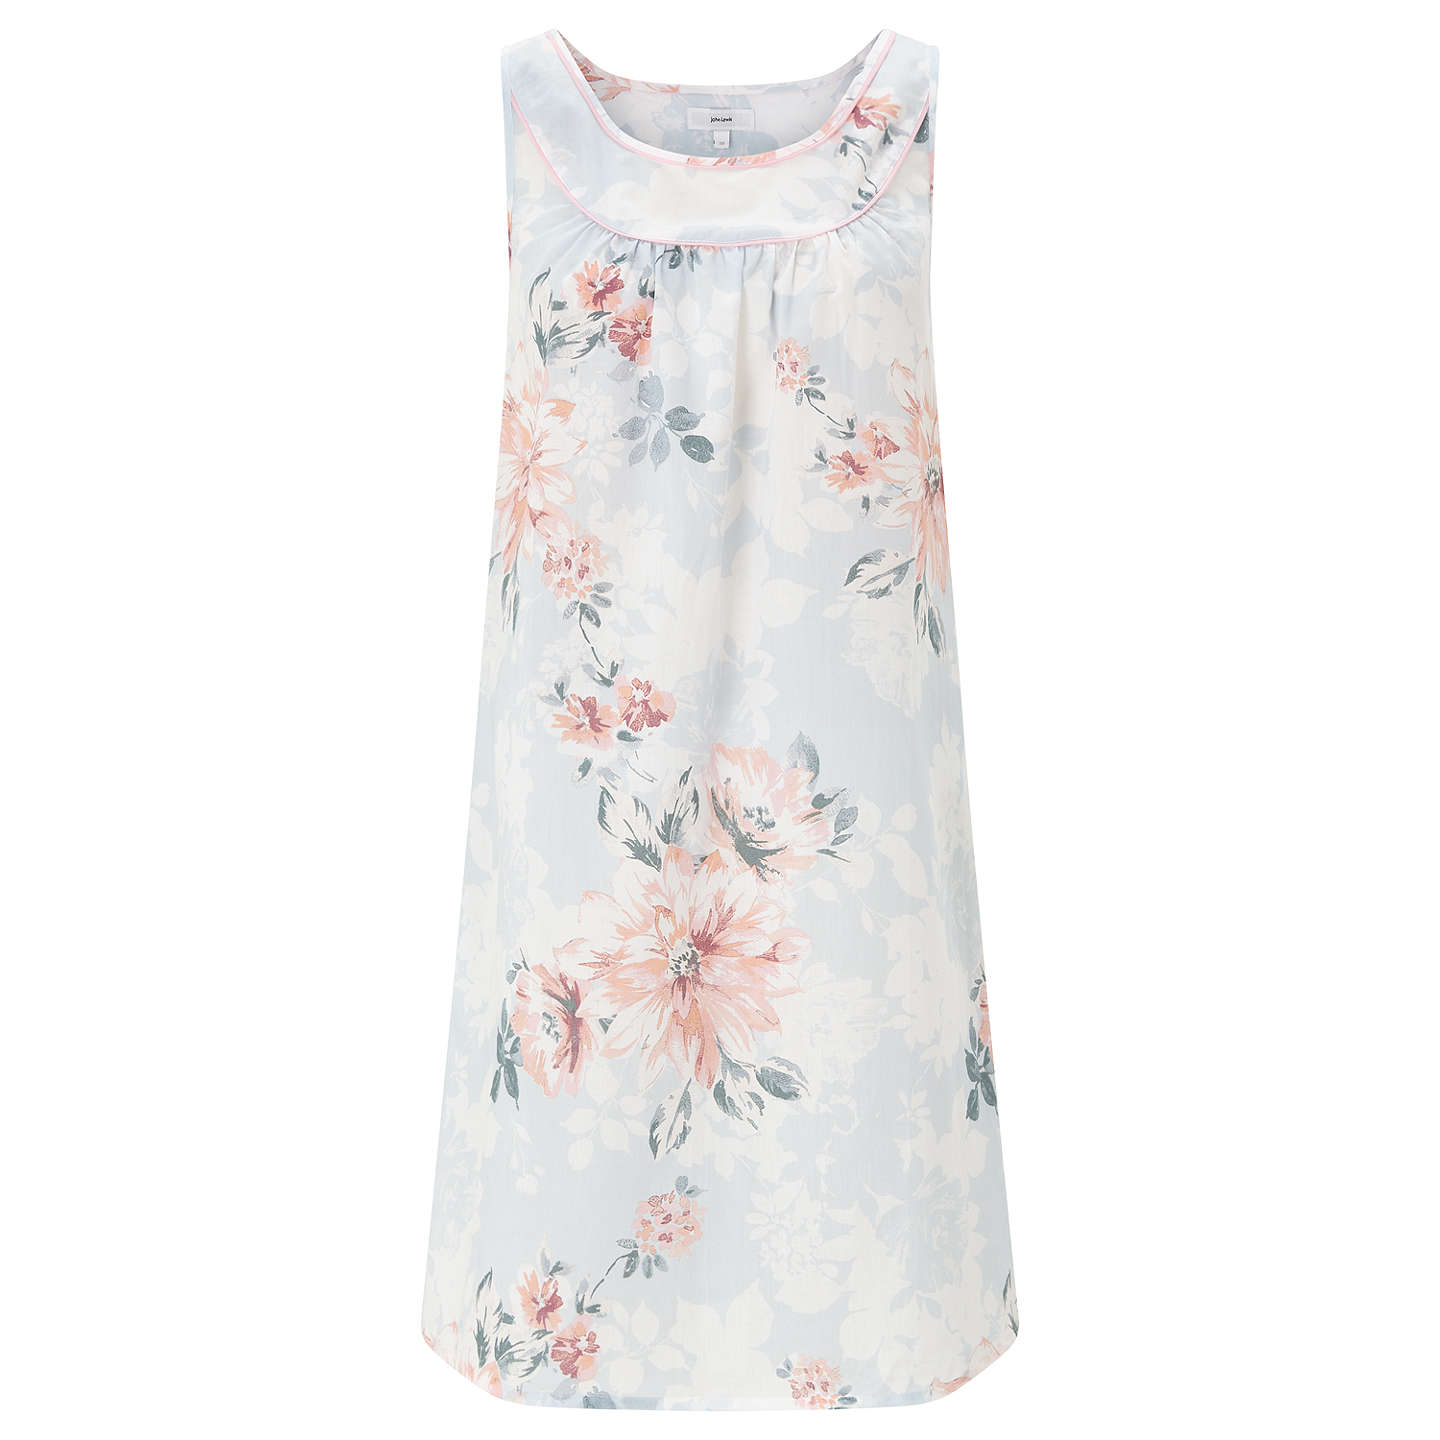 BuyJohn Lewis Cassie Floral Print Chemise, Blue/Pink, 8 Online at johnlewis.com